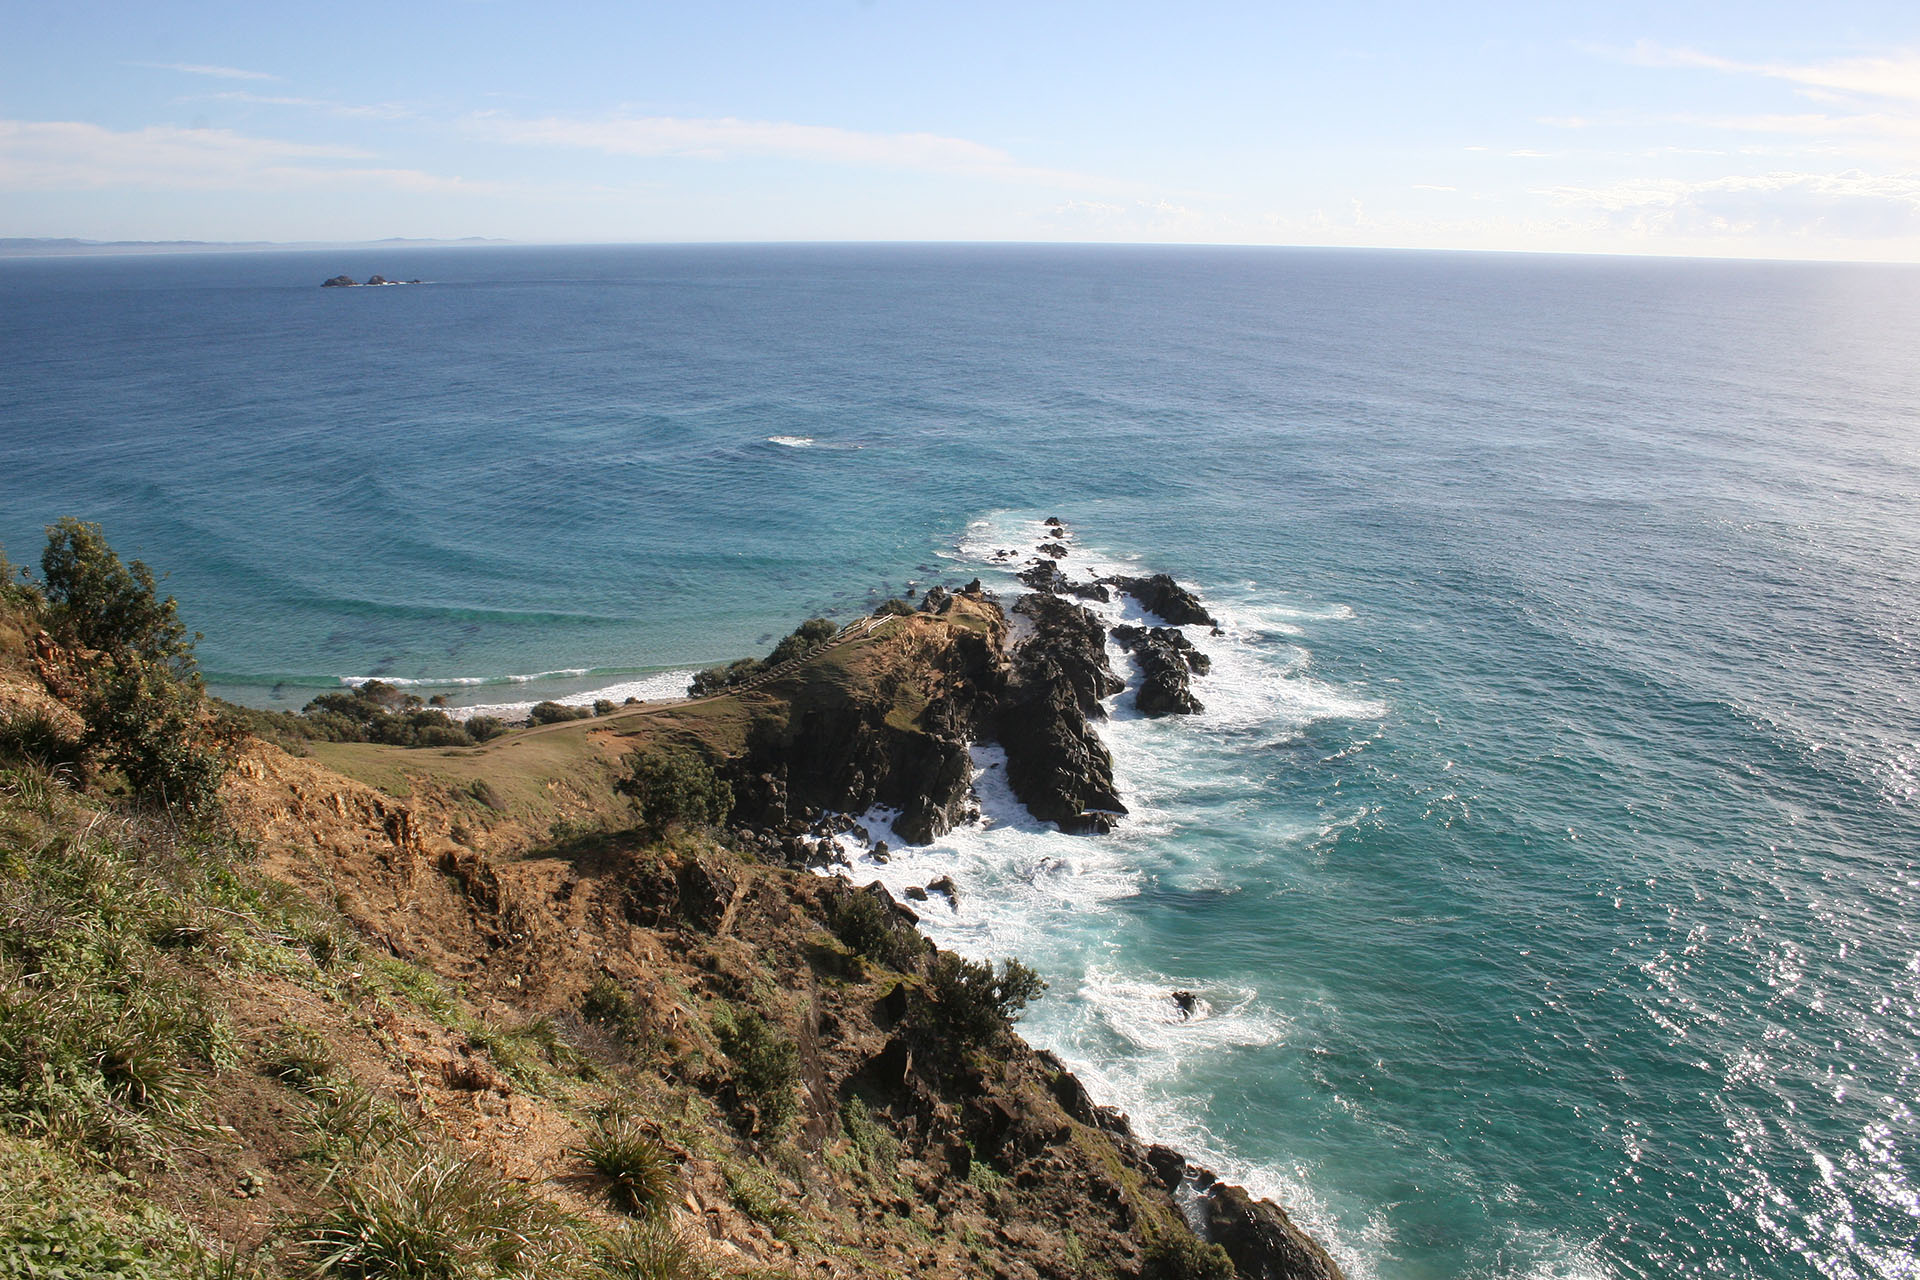 Cape Byron. Nothing but New Zealand beyond the horizon.